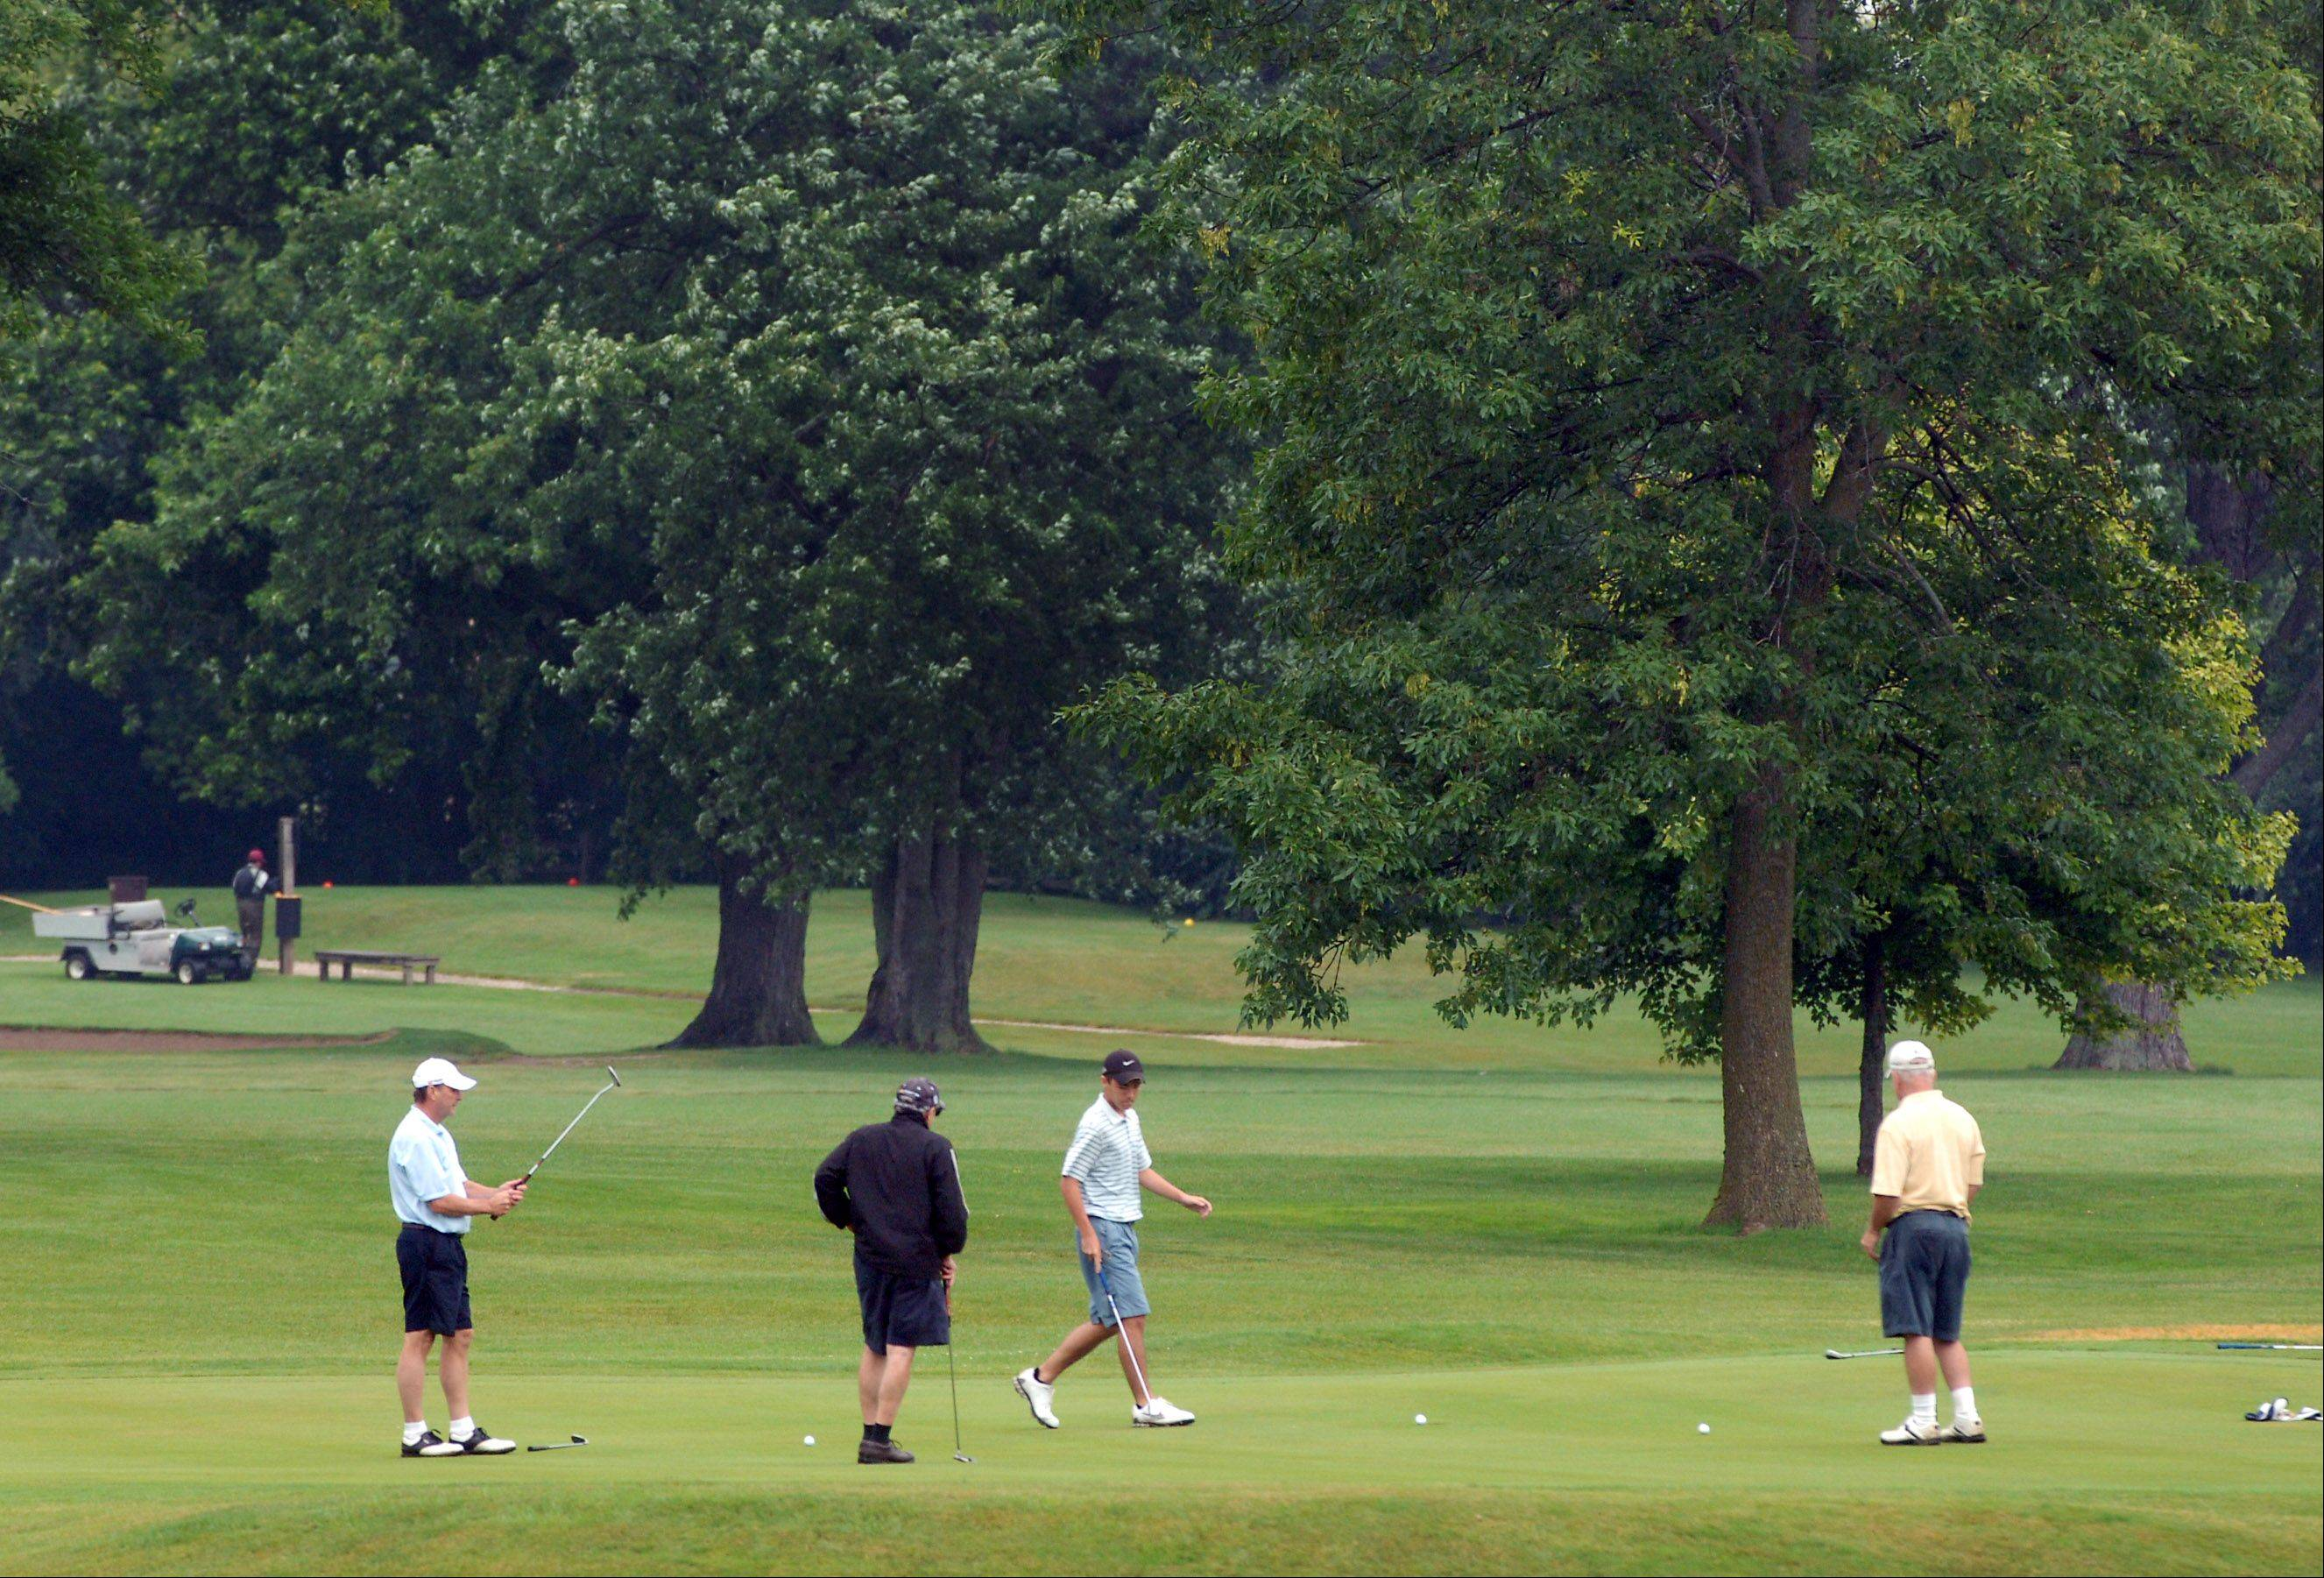 Brae Loch in Grayslake is one of four Lake County Forest Preserve District golf courses that have seen a significant decline in rounds played over the past five years. Officials hope new marketing efforts, combined with the early onset of warm weather, will help reverse that trend.